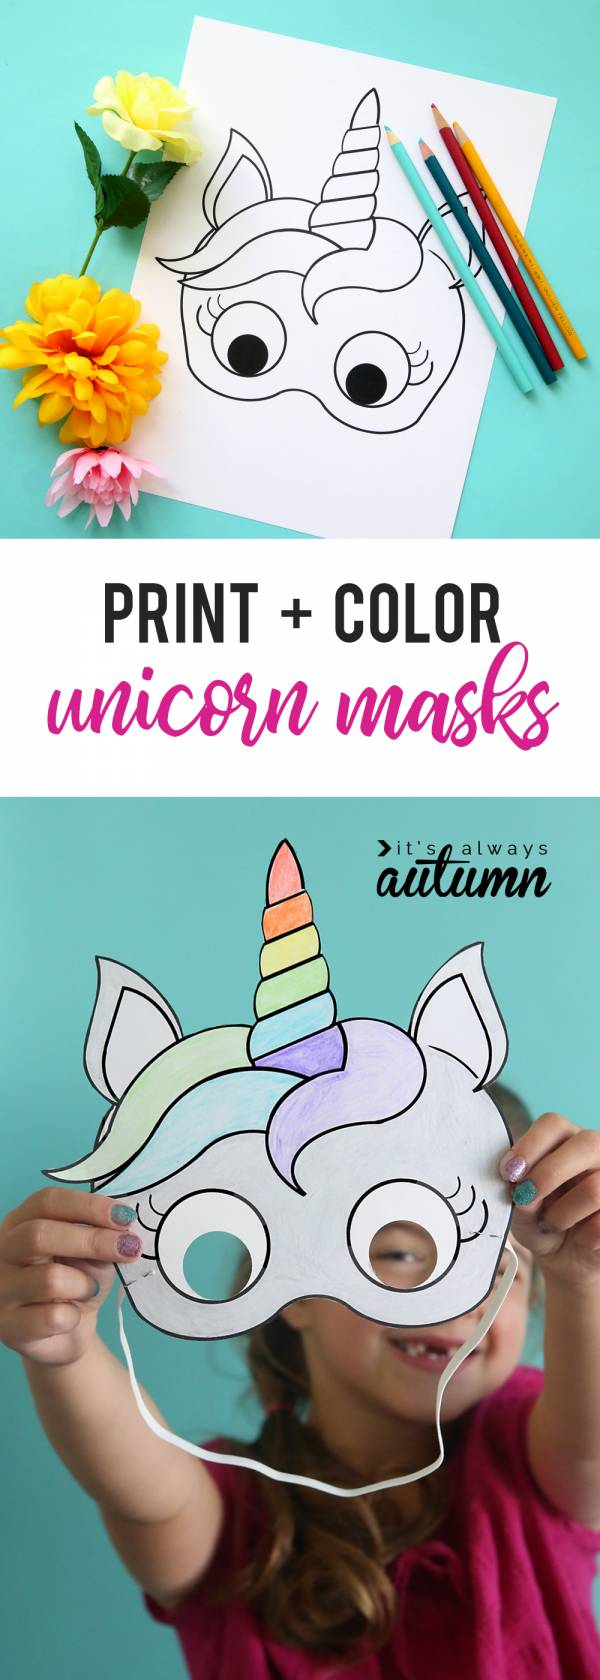 graphic about Printable Unicorn Mask called Do it yourself Unicorn Masks in direction of Print and Coloration S Scheduling